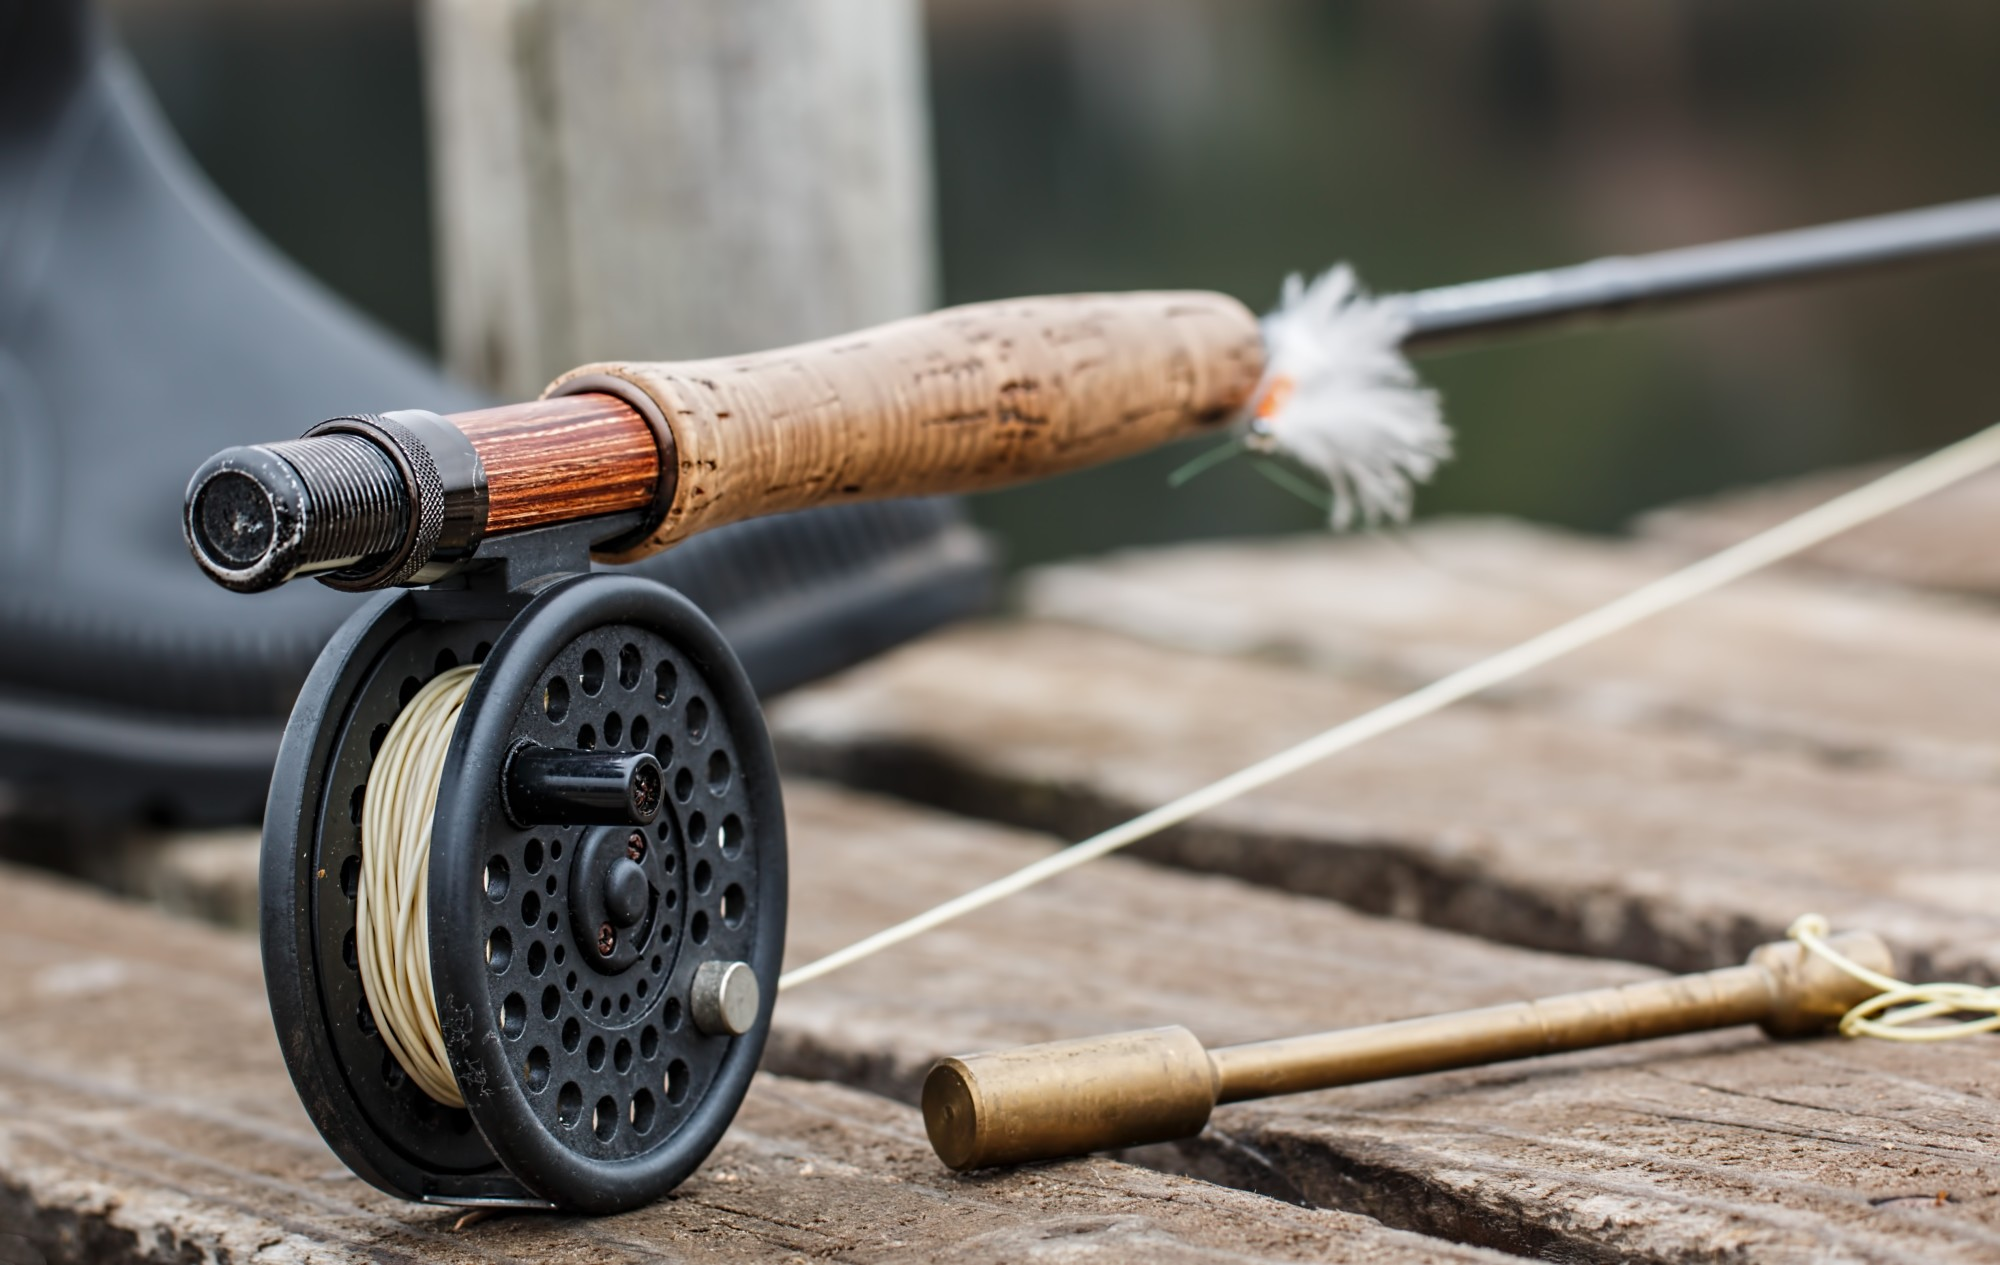 The 7 Essential Saltwater Fly Fishing Gear Items Every Angler Should Own